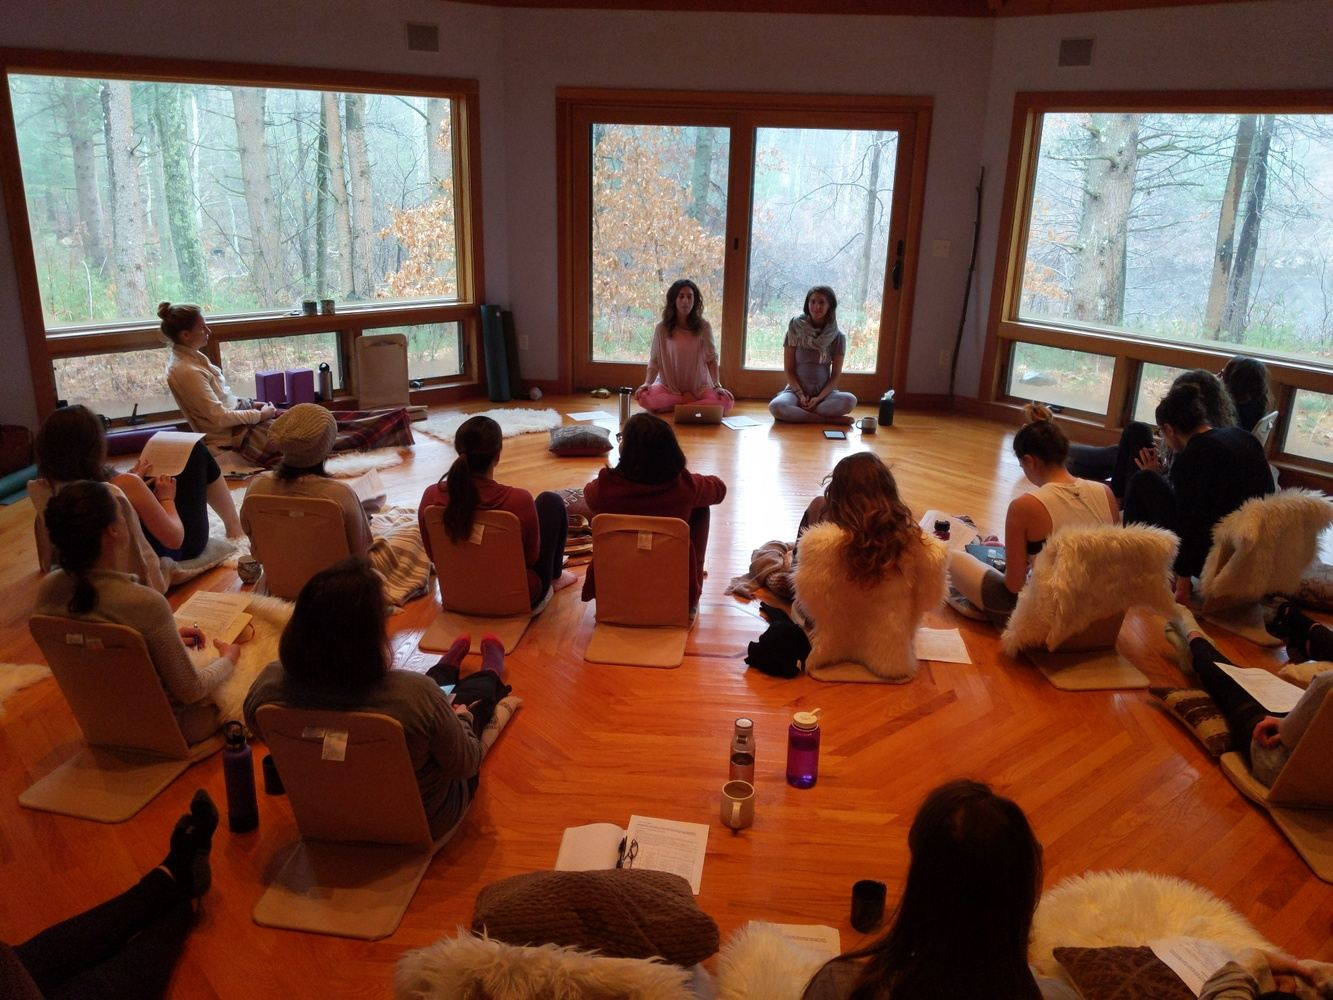 Be Light: Tejas & our Luminosity, A Yoga & Ayurveda Staycation Retreat